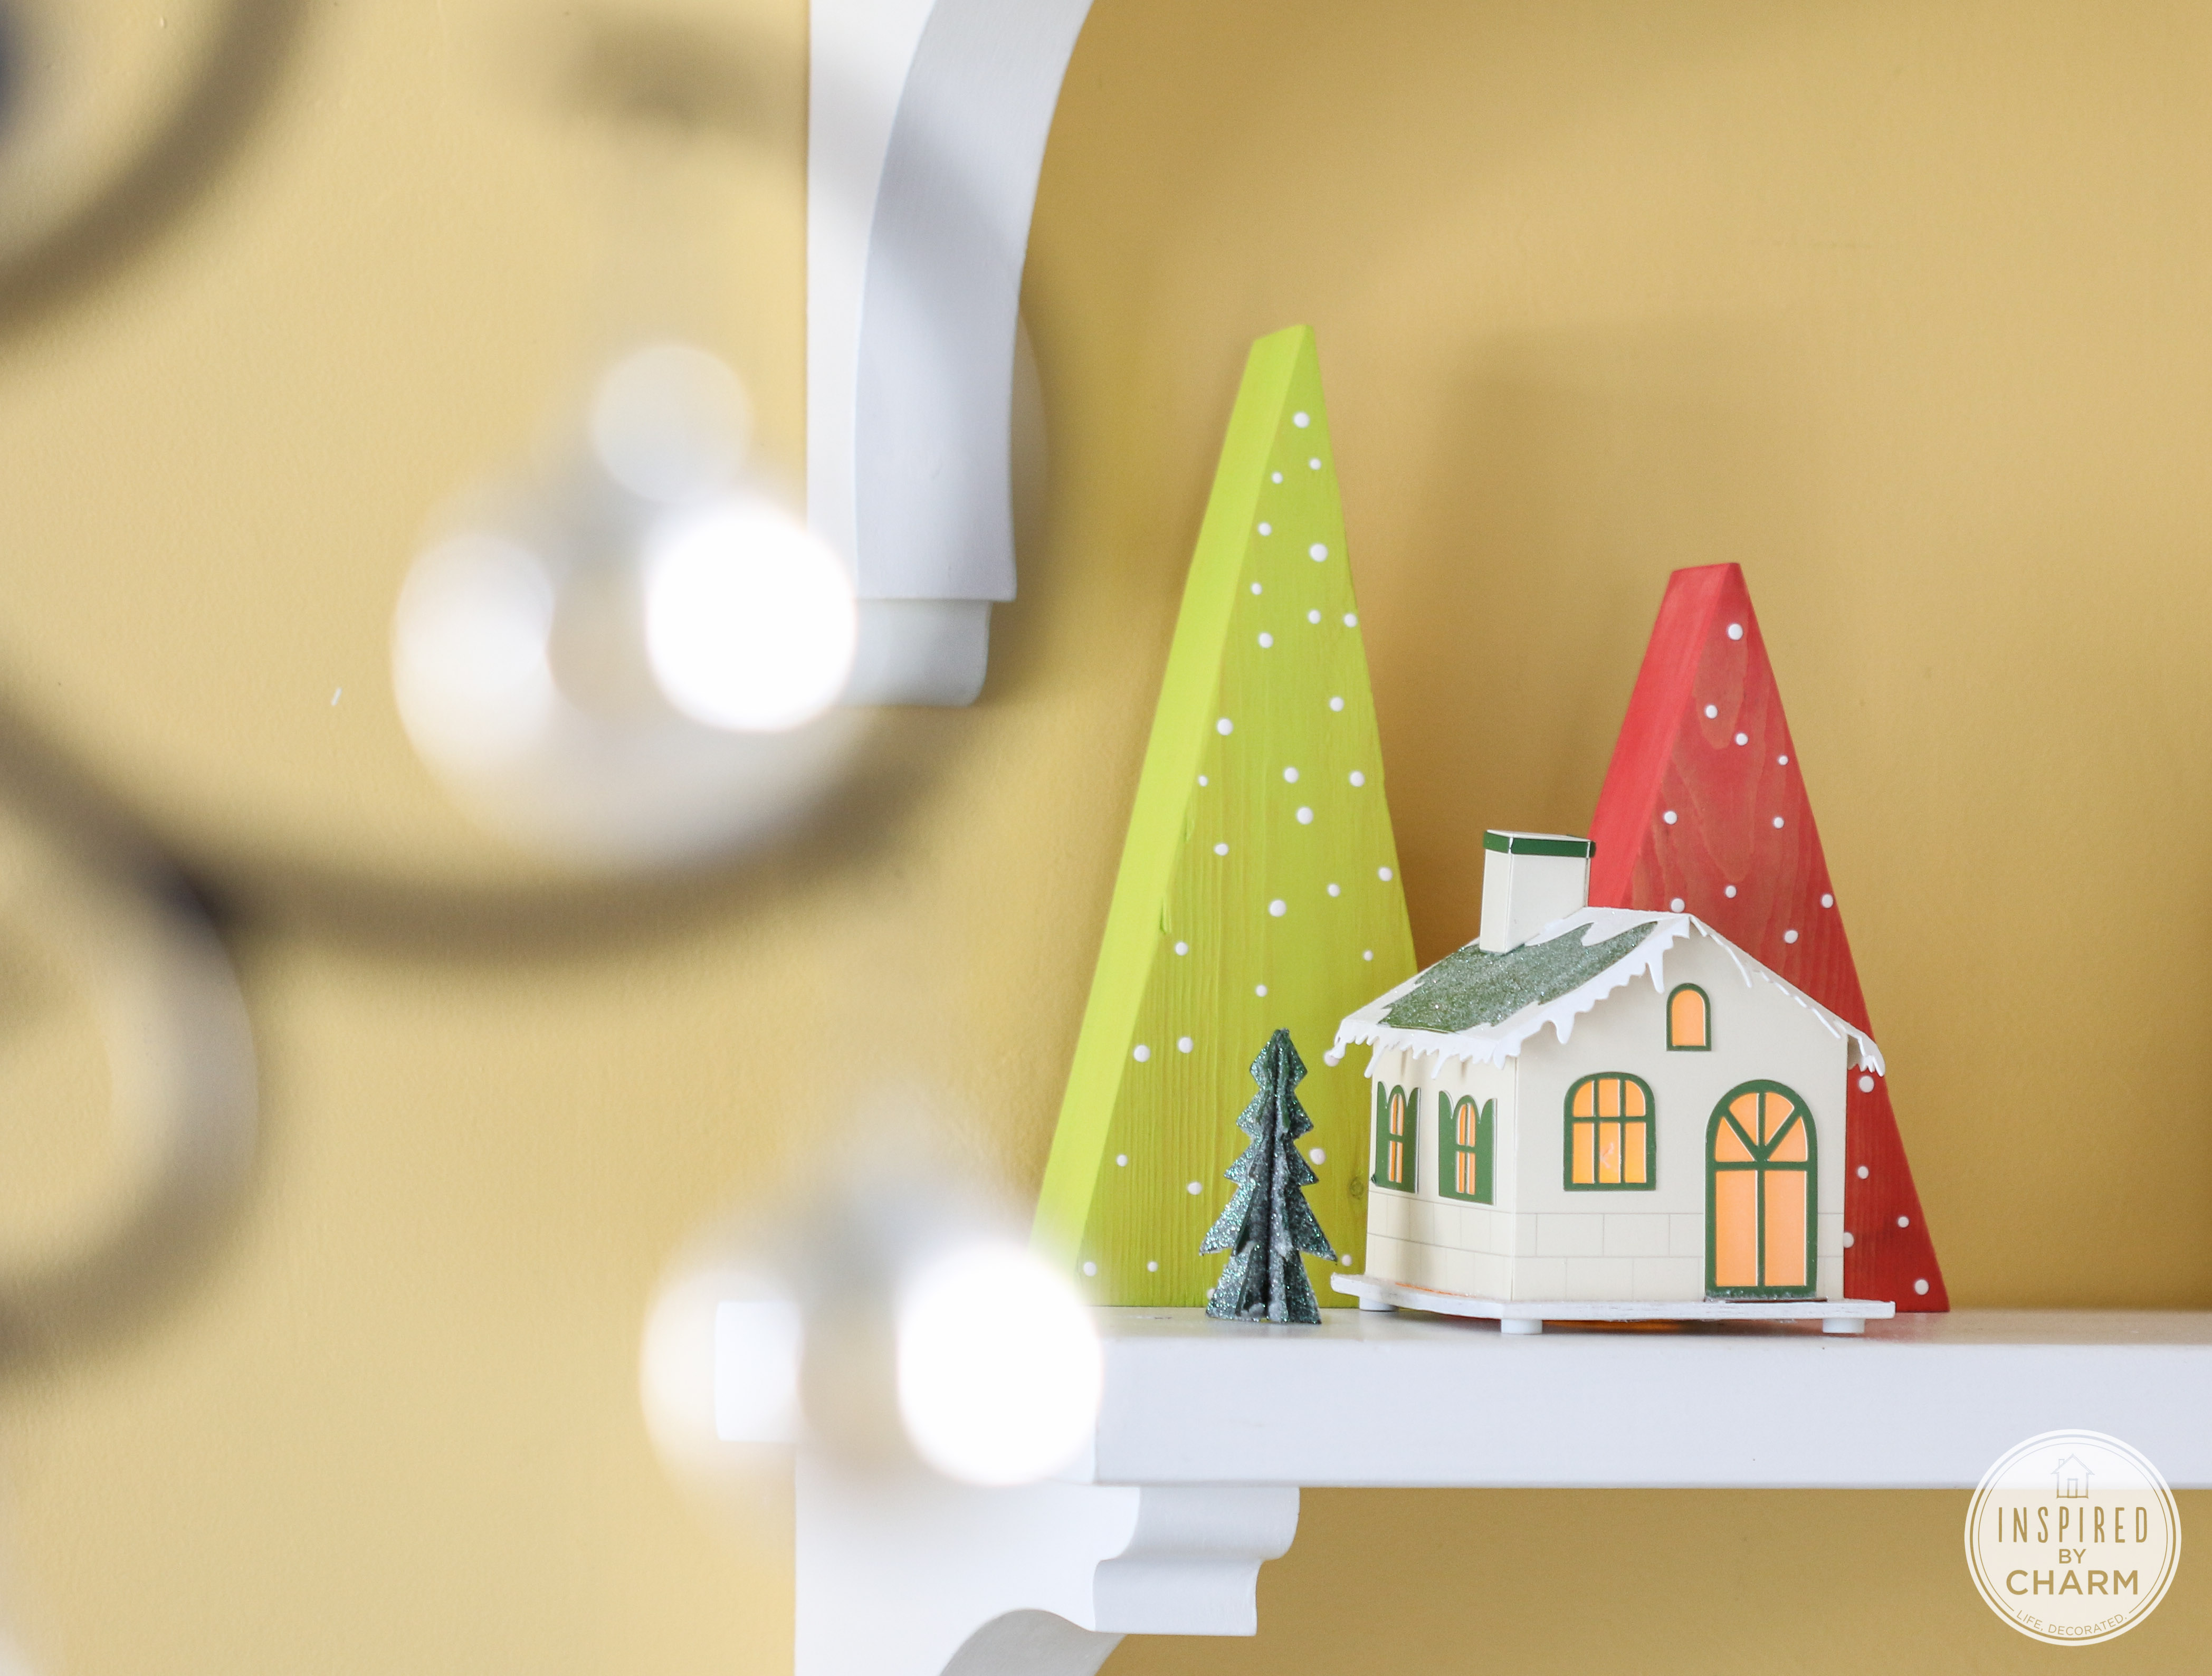 15 Quick & Easy Christmas Crafts You Can Add To Your Holiday Decor